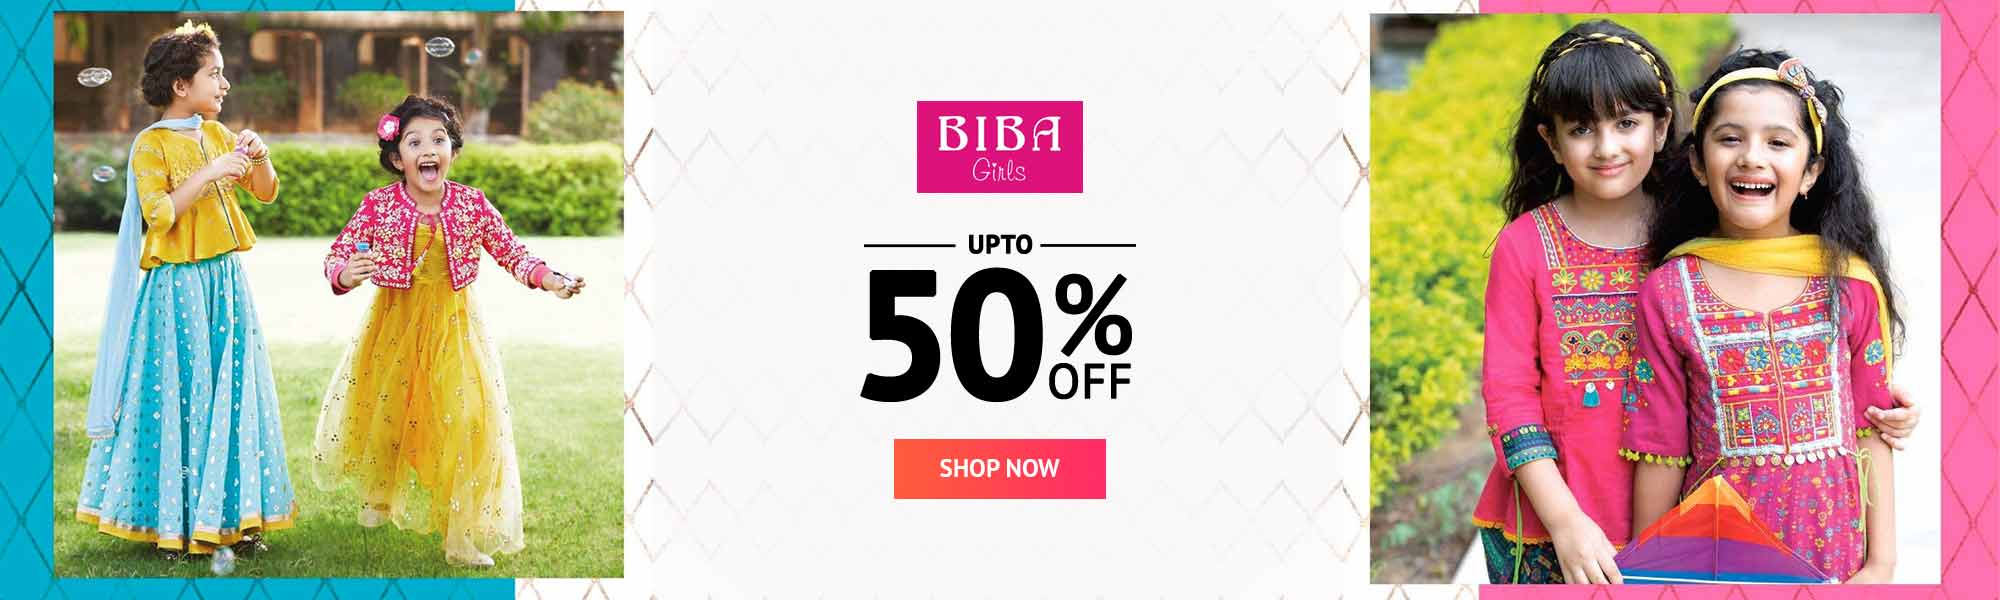 Biba Girl Offer